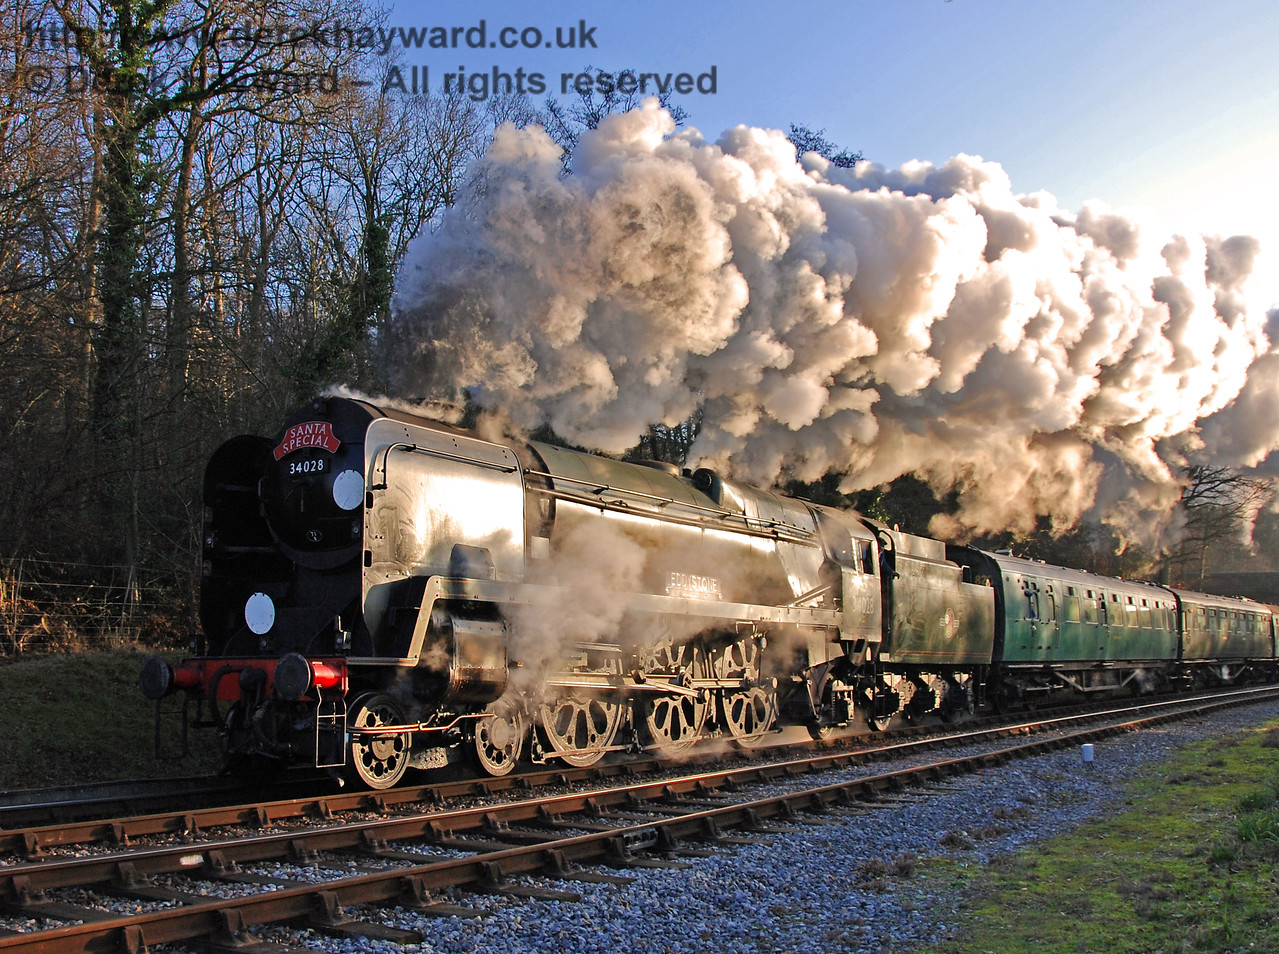 The Shedmaster (driving) generates some excellent steam effects as 34028 Eddystone leaves Horsted Keynes. 16.12.2007